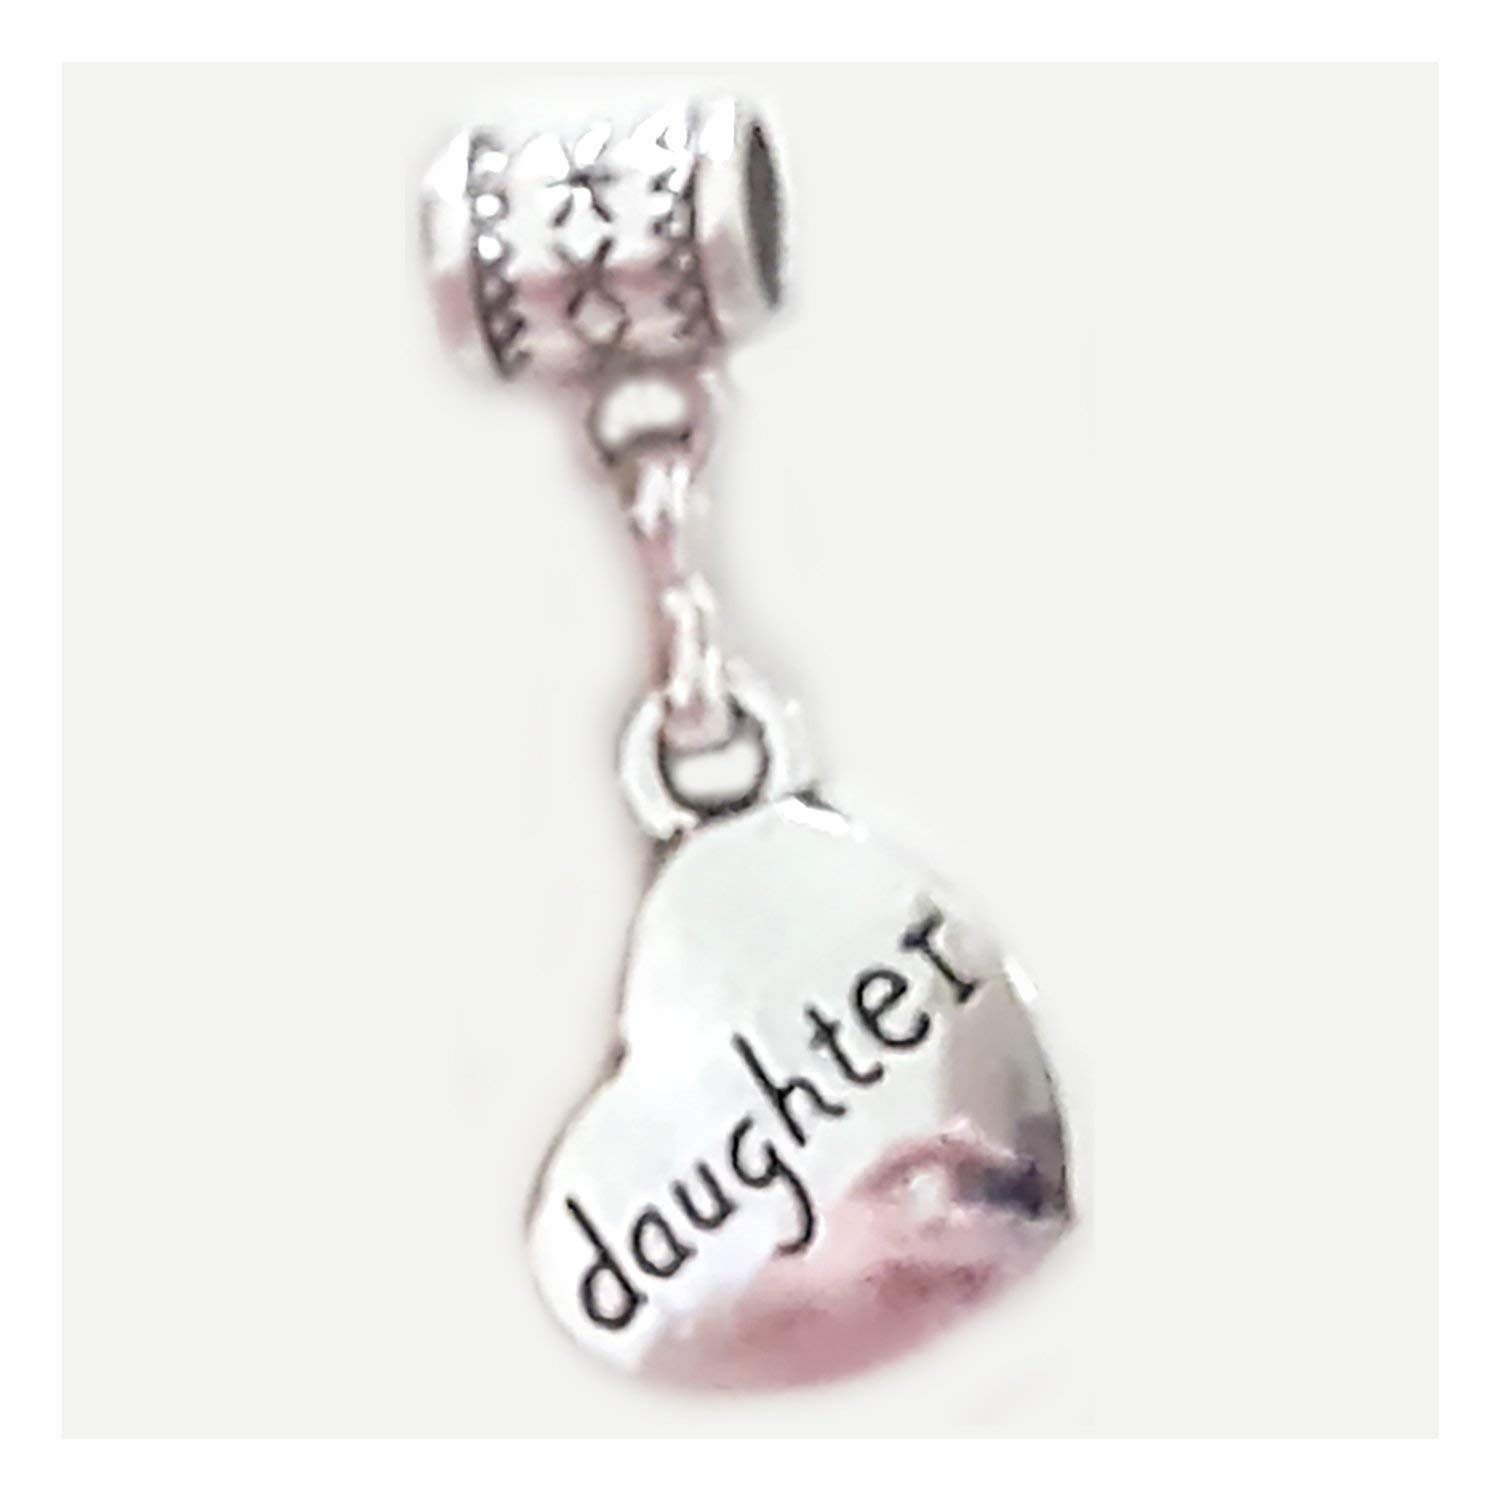 """Daughter charm"" is a Tibetan Silver 2-sided Heart-shaped charm by Mossy Cabin for large-hole snake chain charm bracelets, or add to a neck chain, pendant necklace or key chain"